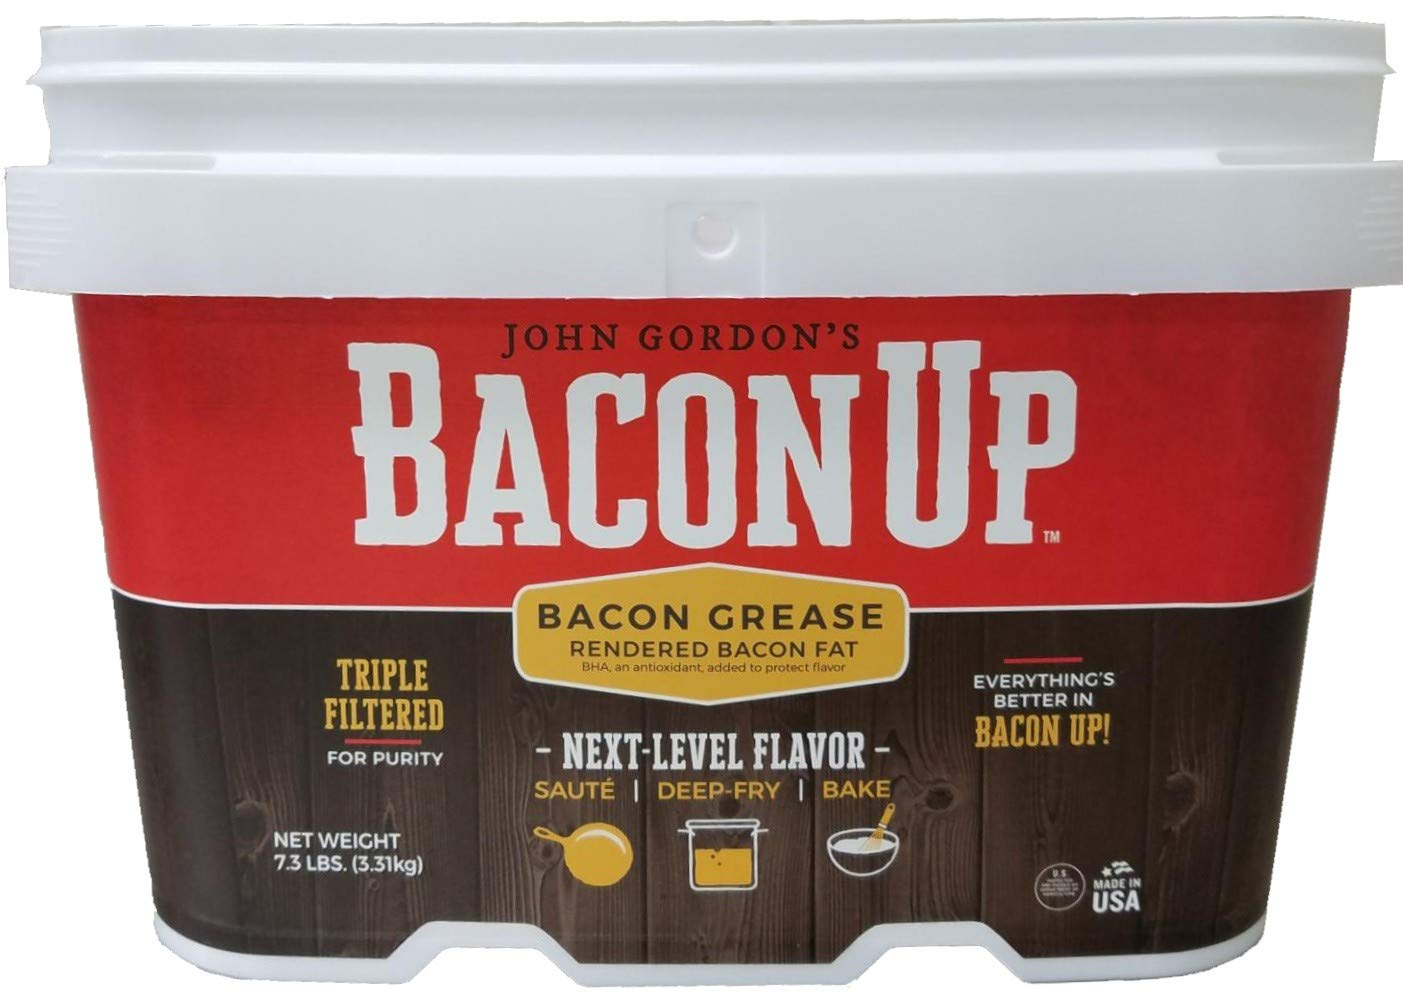 Bacon Up Bacon Grease Rendered Bacon Fat for Frying, Cooking, Baking, 1 Gallon